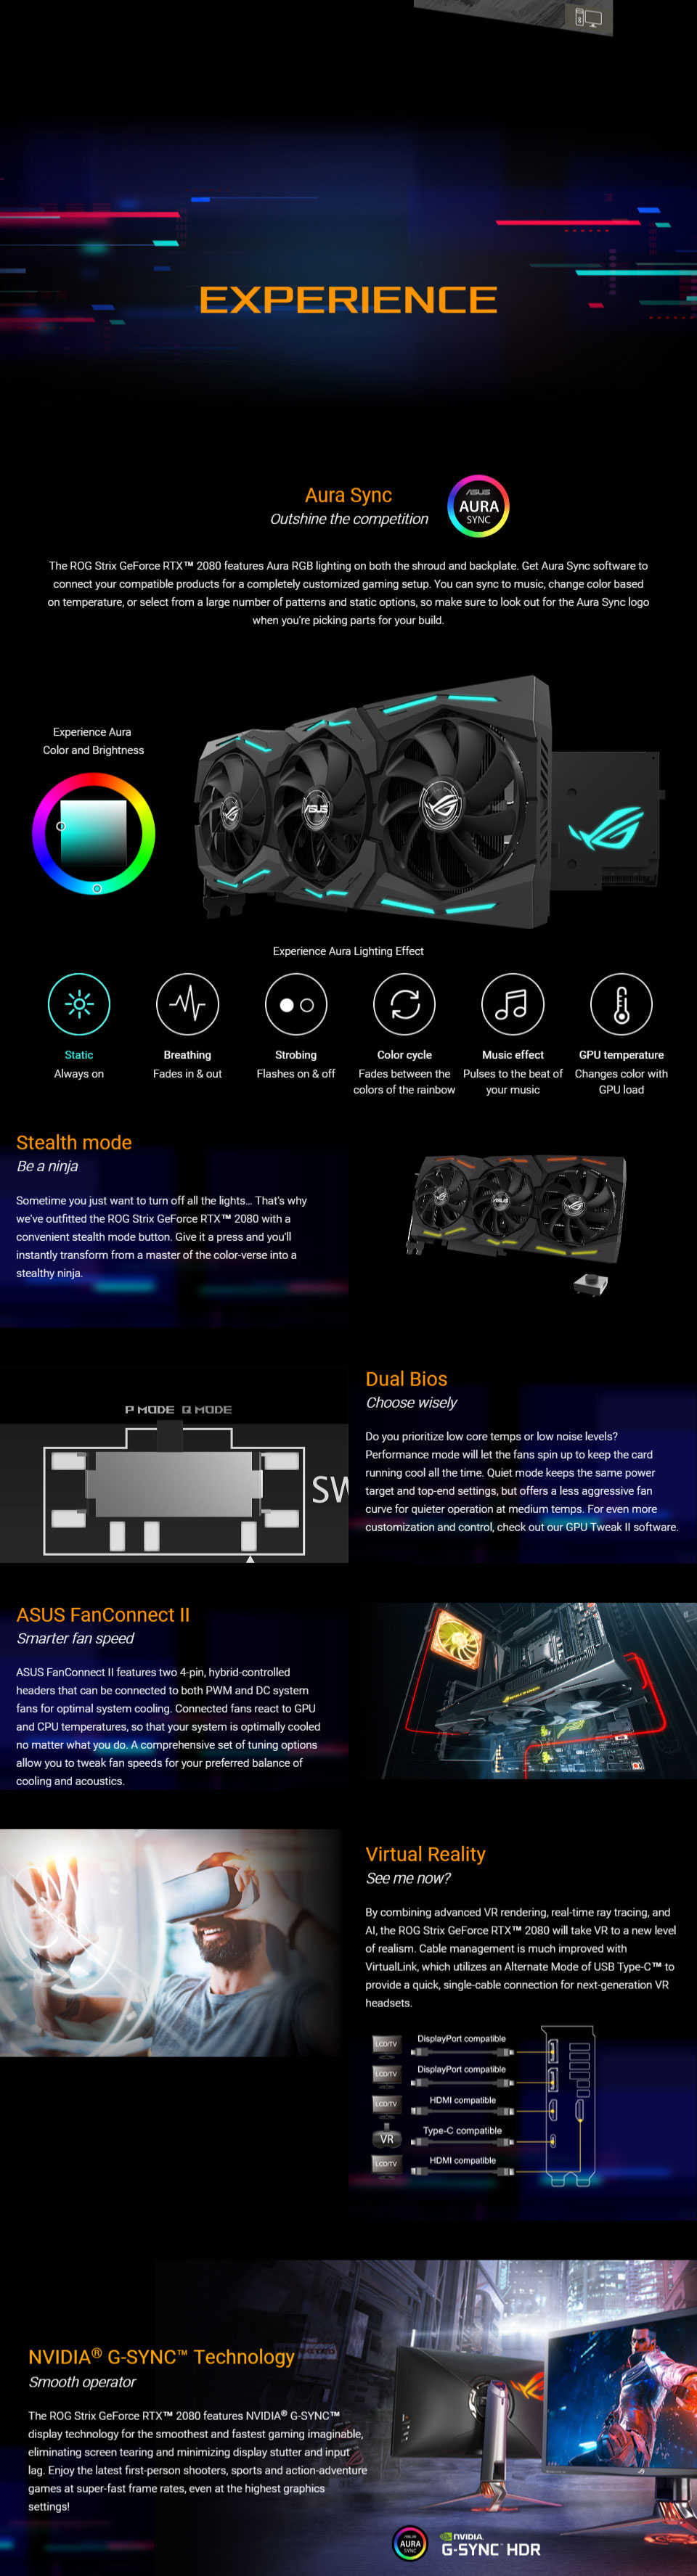 Details about ASUS ROG-STRIX-RTX2080-8G-GAMING GDDR6 8GB Graphics Card